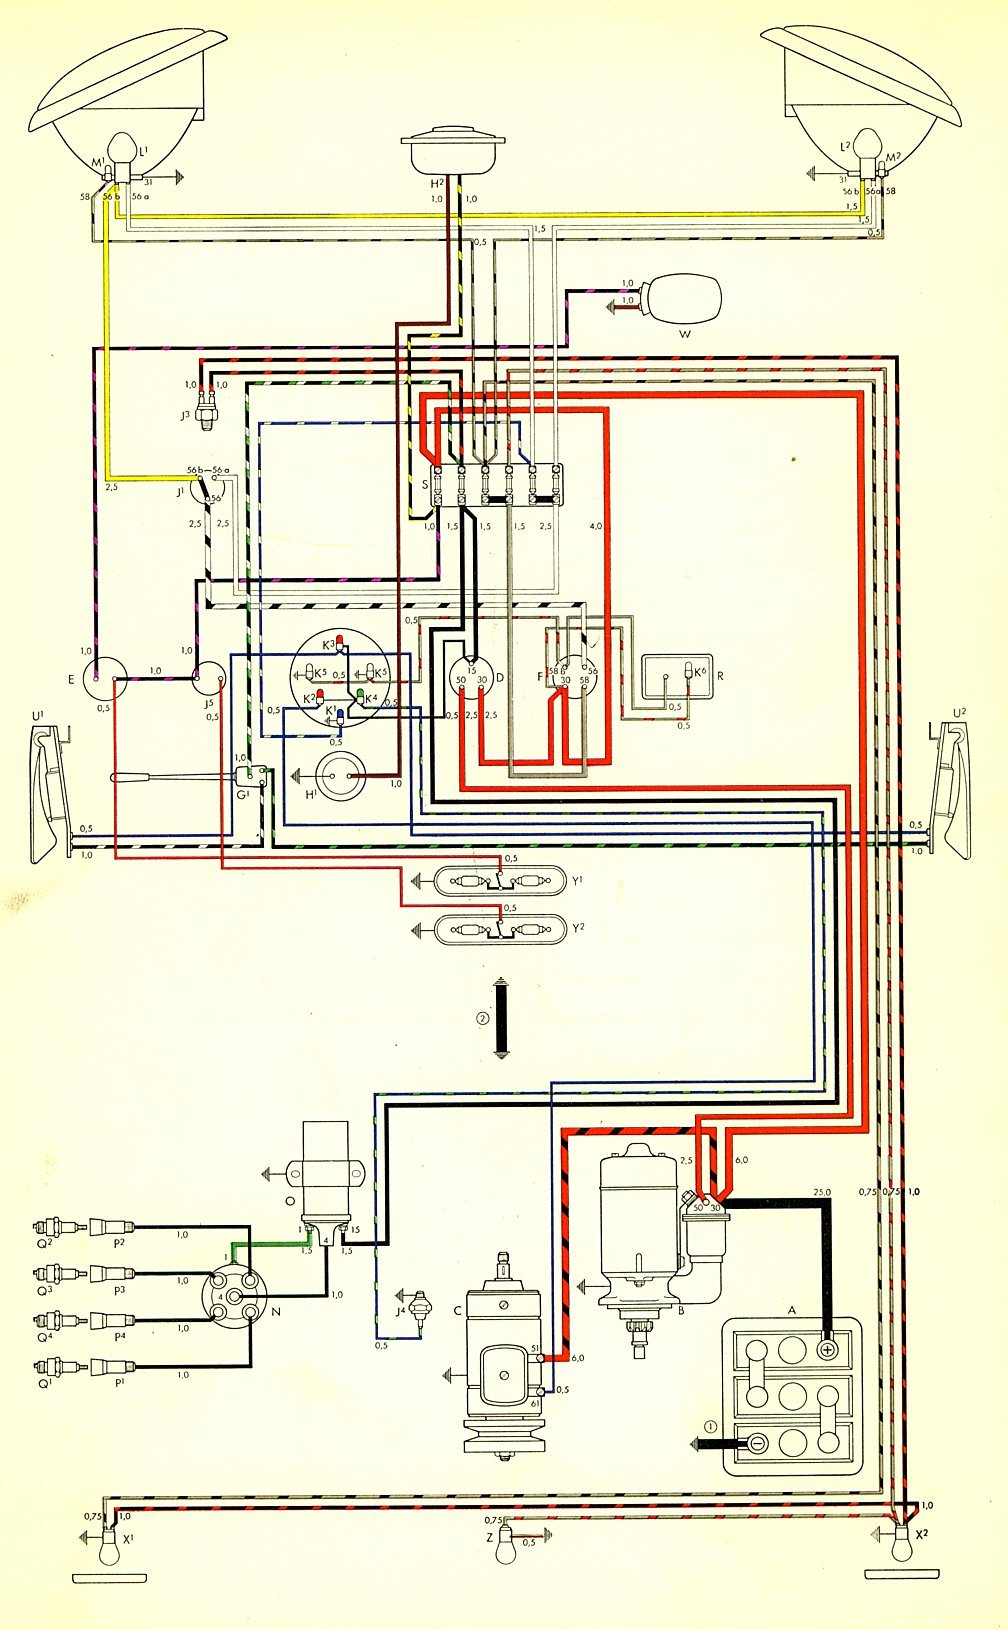 Vw Wiring Diagram For 1977 Worksheet And Caprice Schematic Bus Schematics Rh Enr Green Com Super Beetle Volkswagen 2002